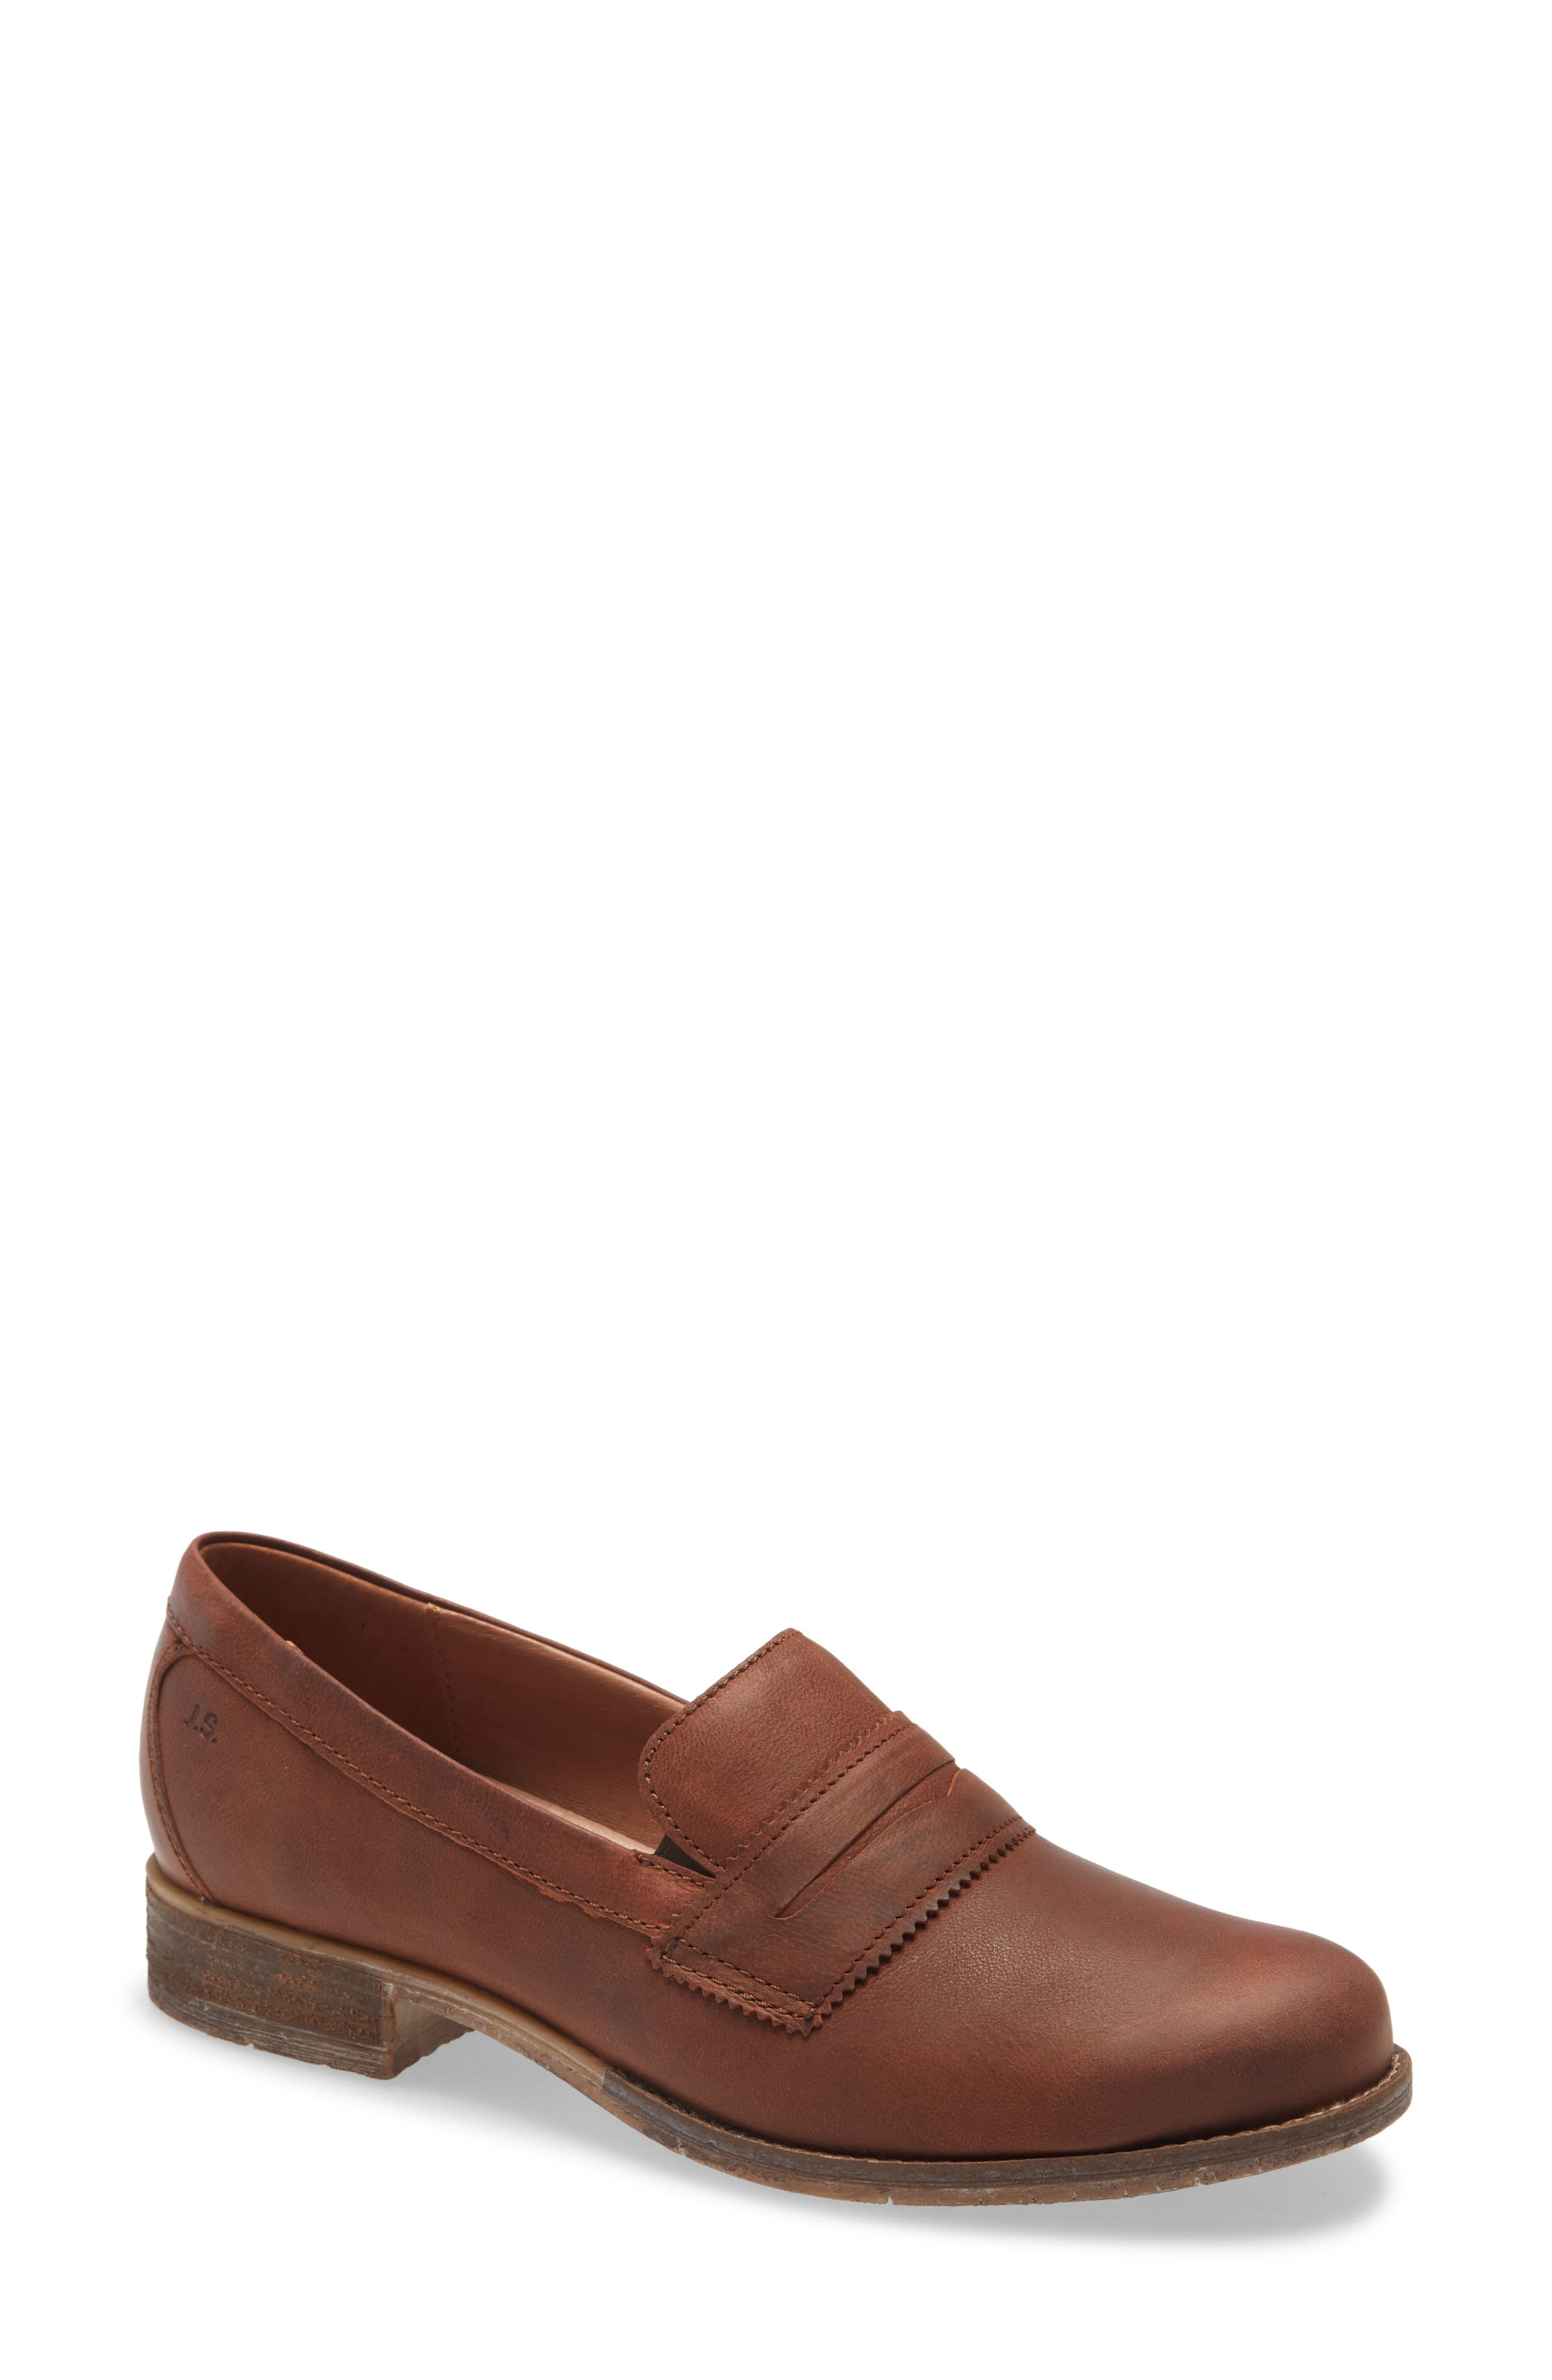 Sienna 96 Leather Loafer